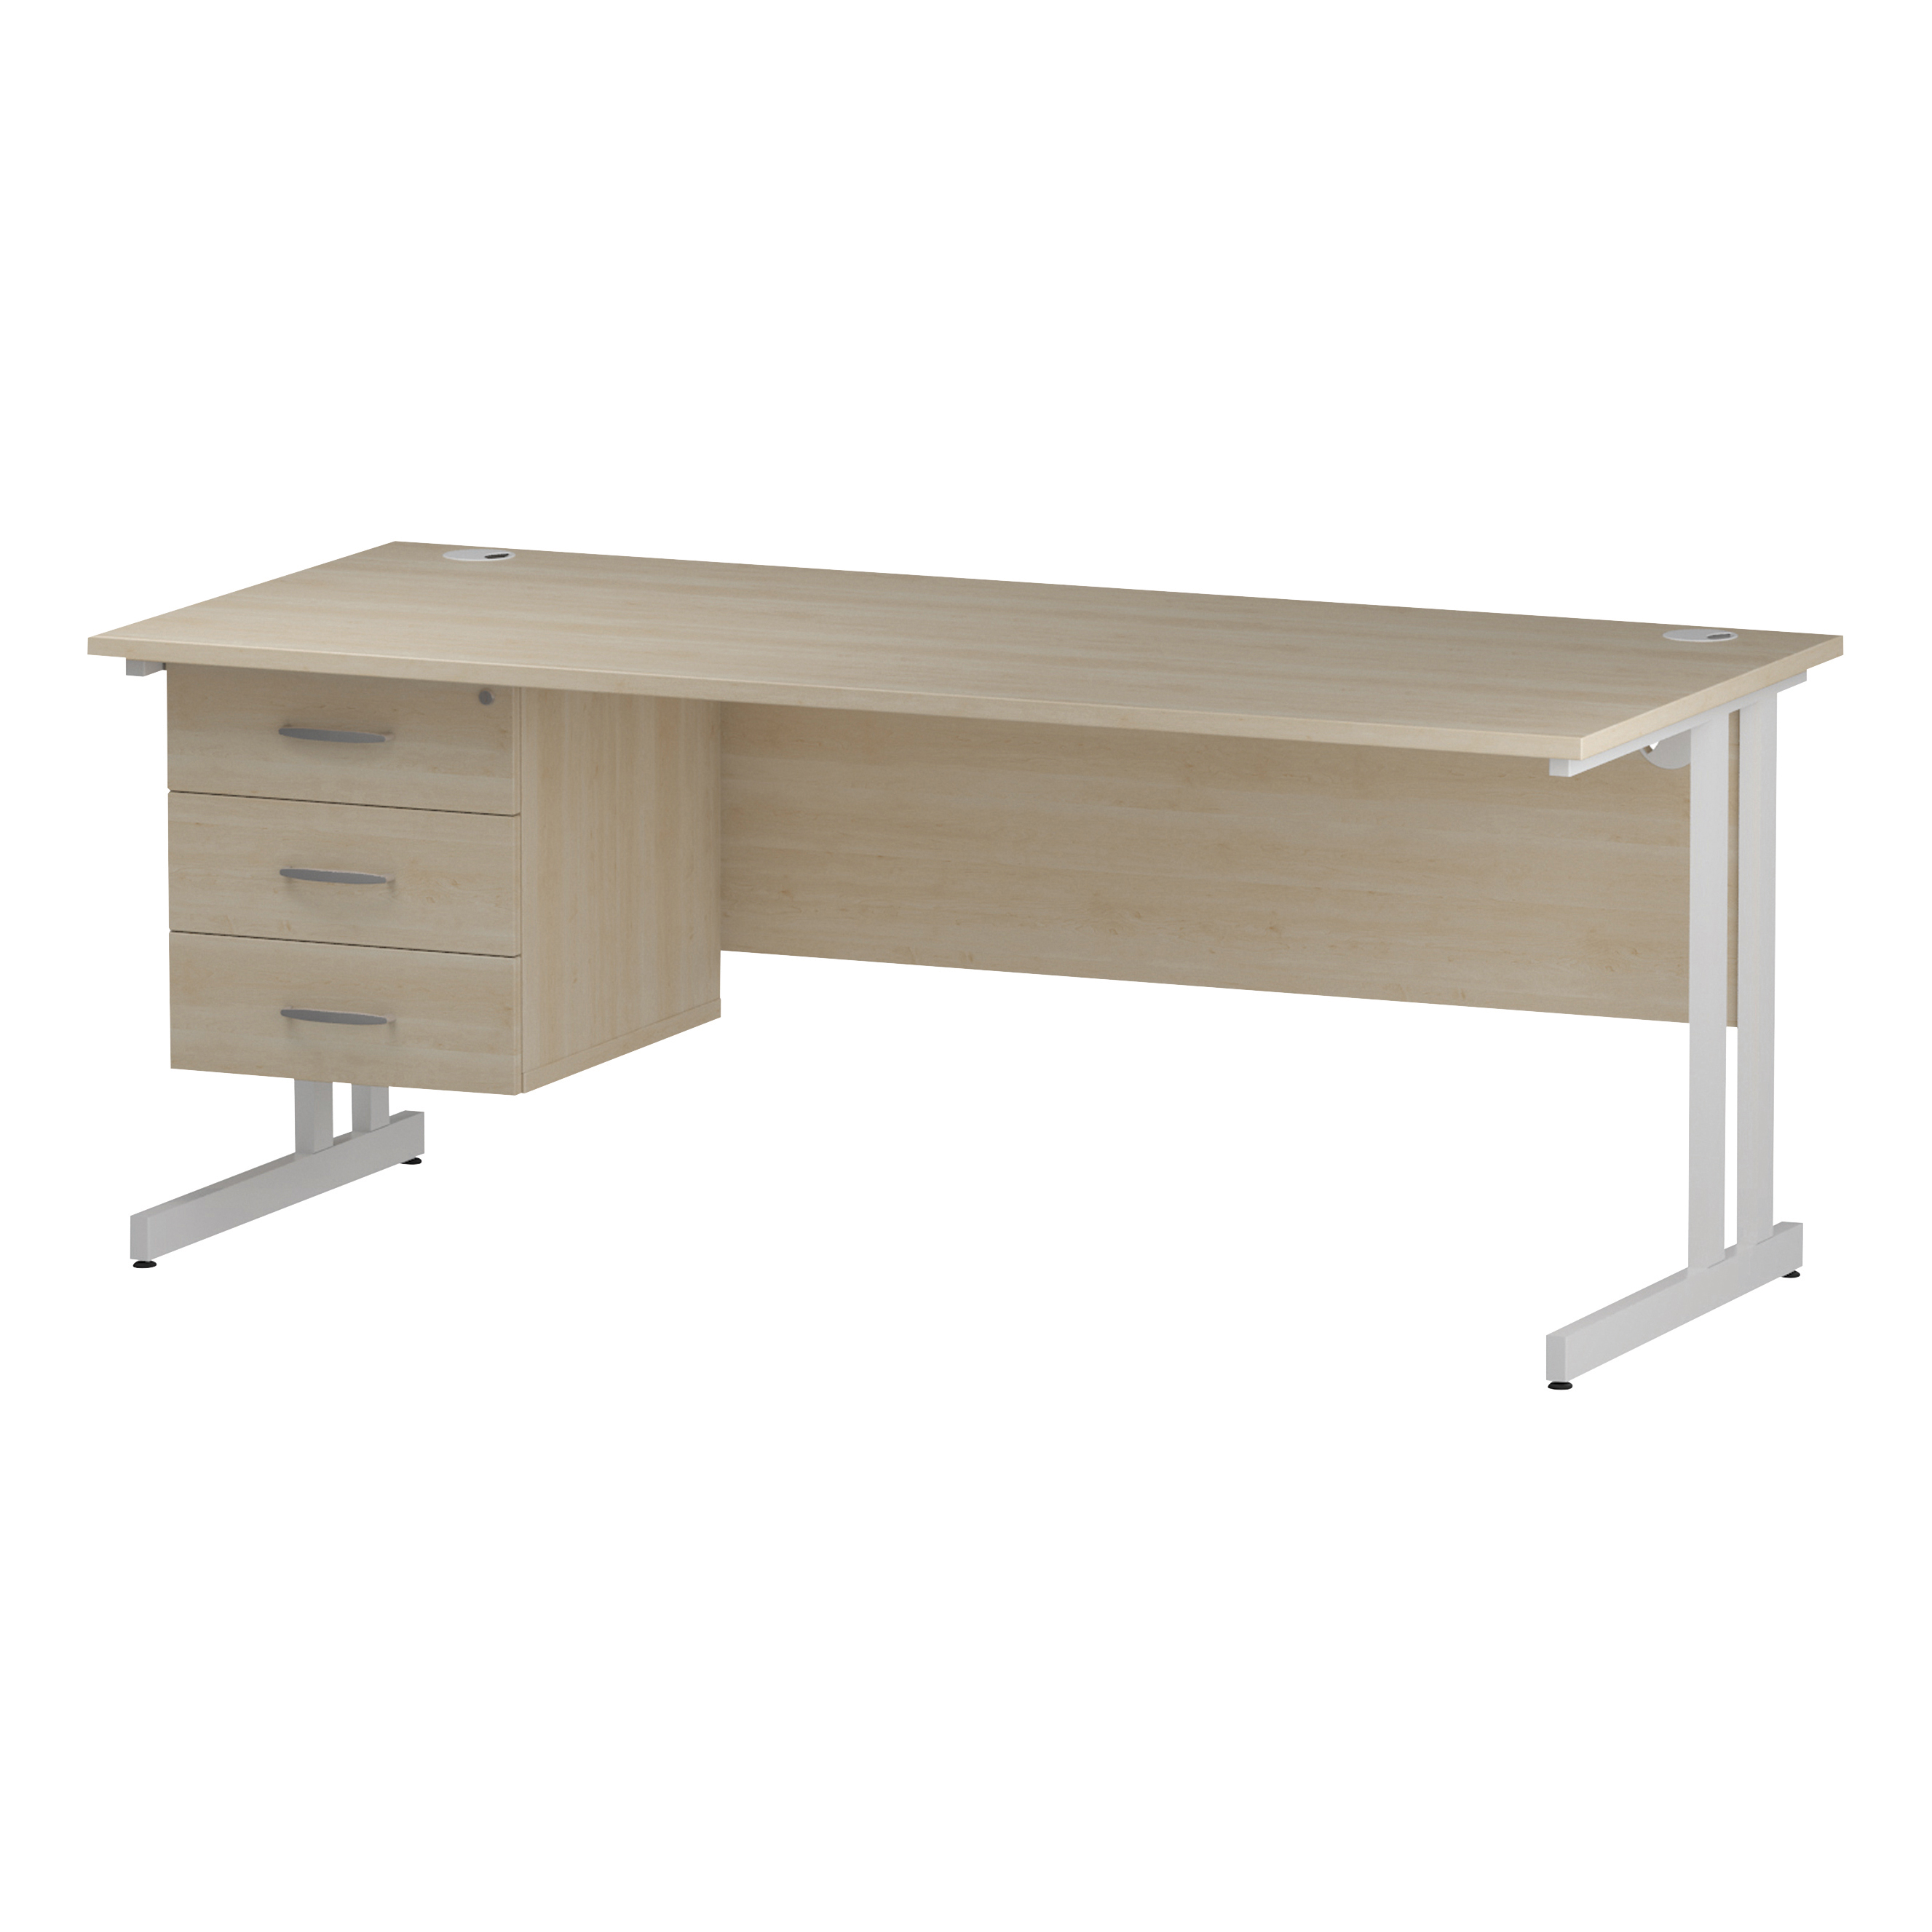 Trexus Rectangular Desk White Cantilever Leg 1800x800mm Fixed Pedestal 3 Drawers Maple Ref I002446